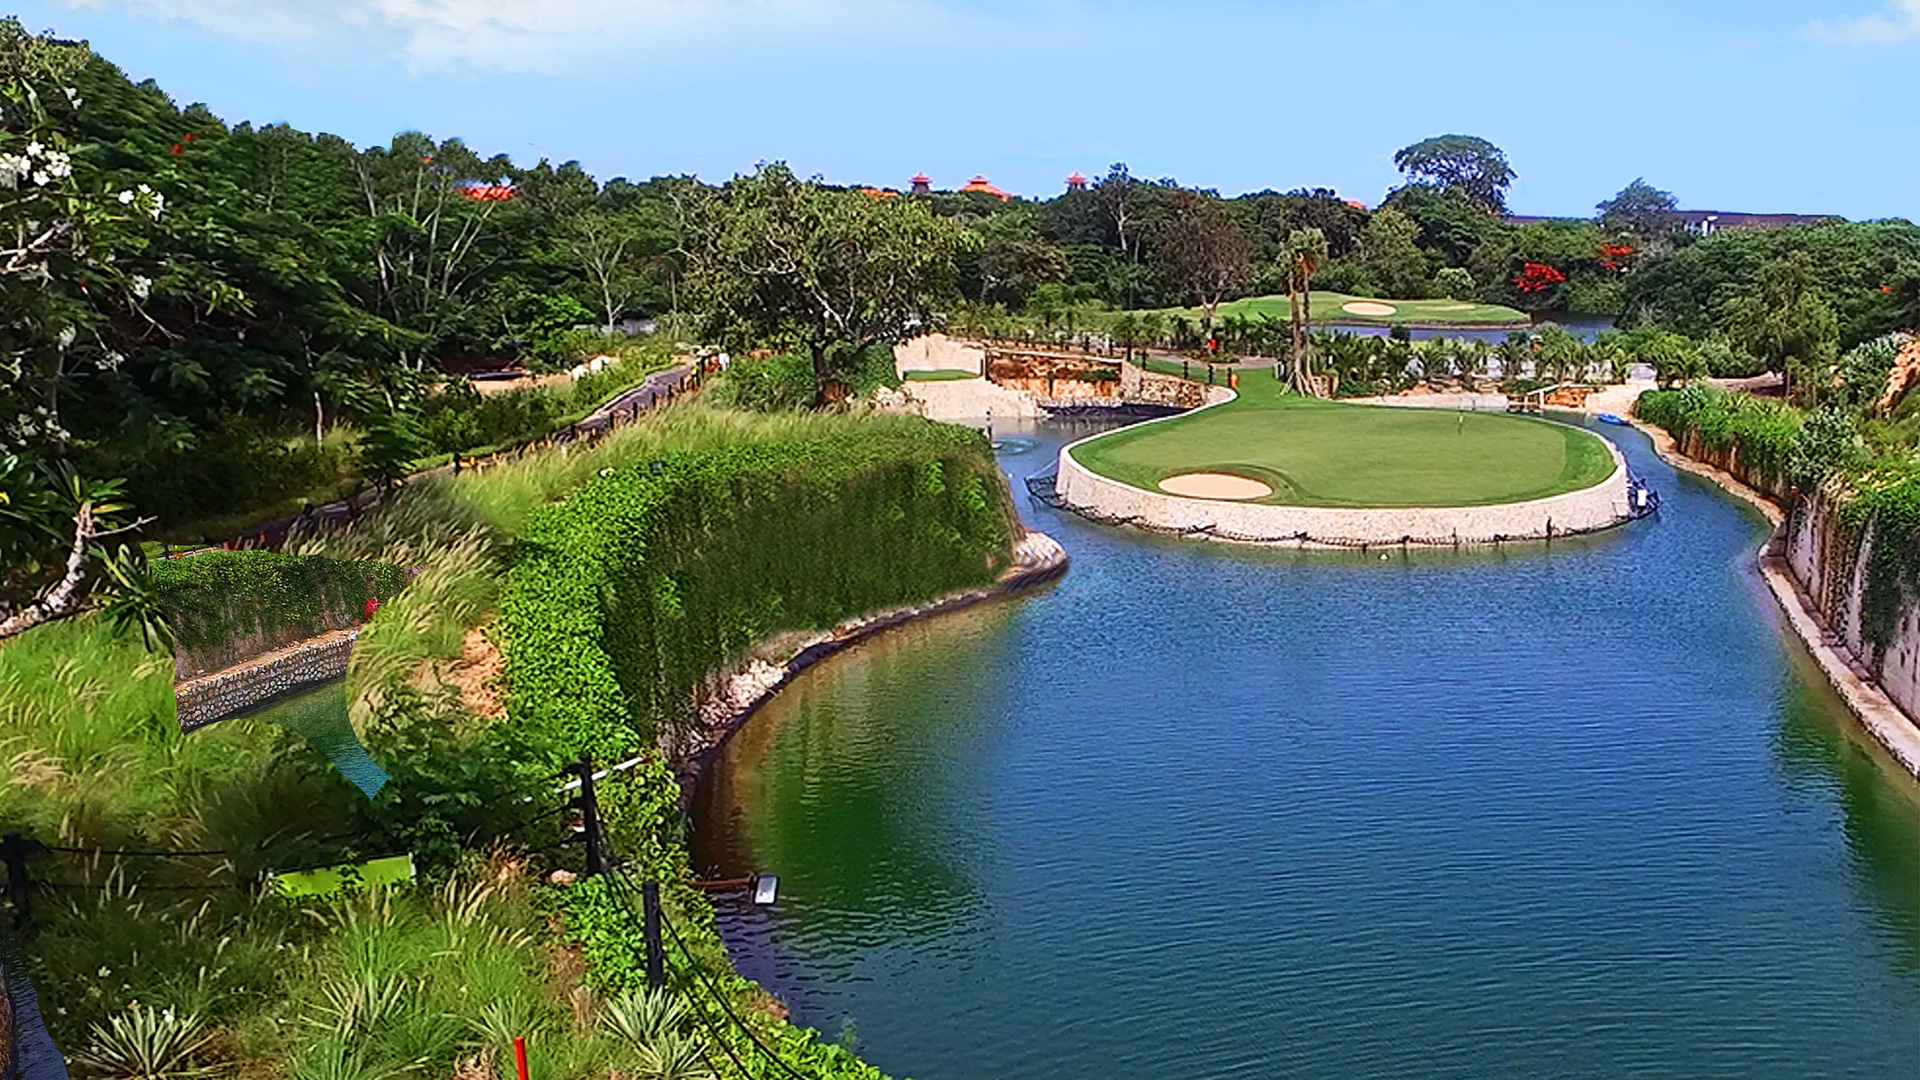 Bahn 9 des Bali National Golf Club. (Foto: Bali National)